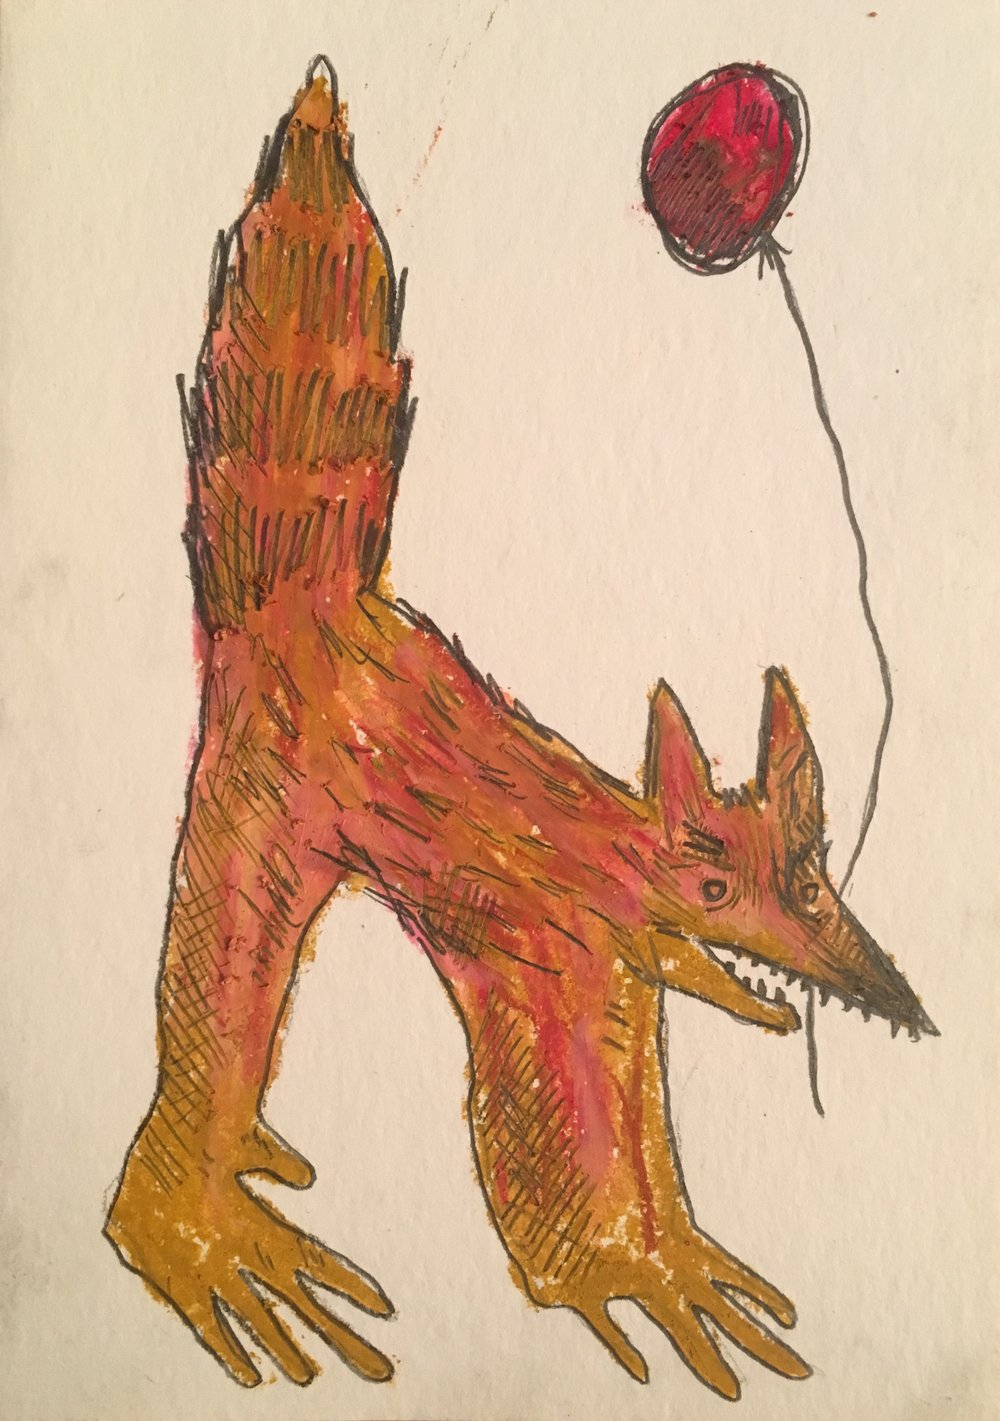 Angry Dog With Balloon  Oil Pastel and Pencil 2018